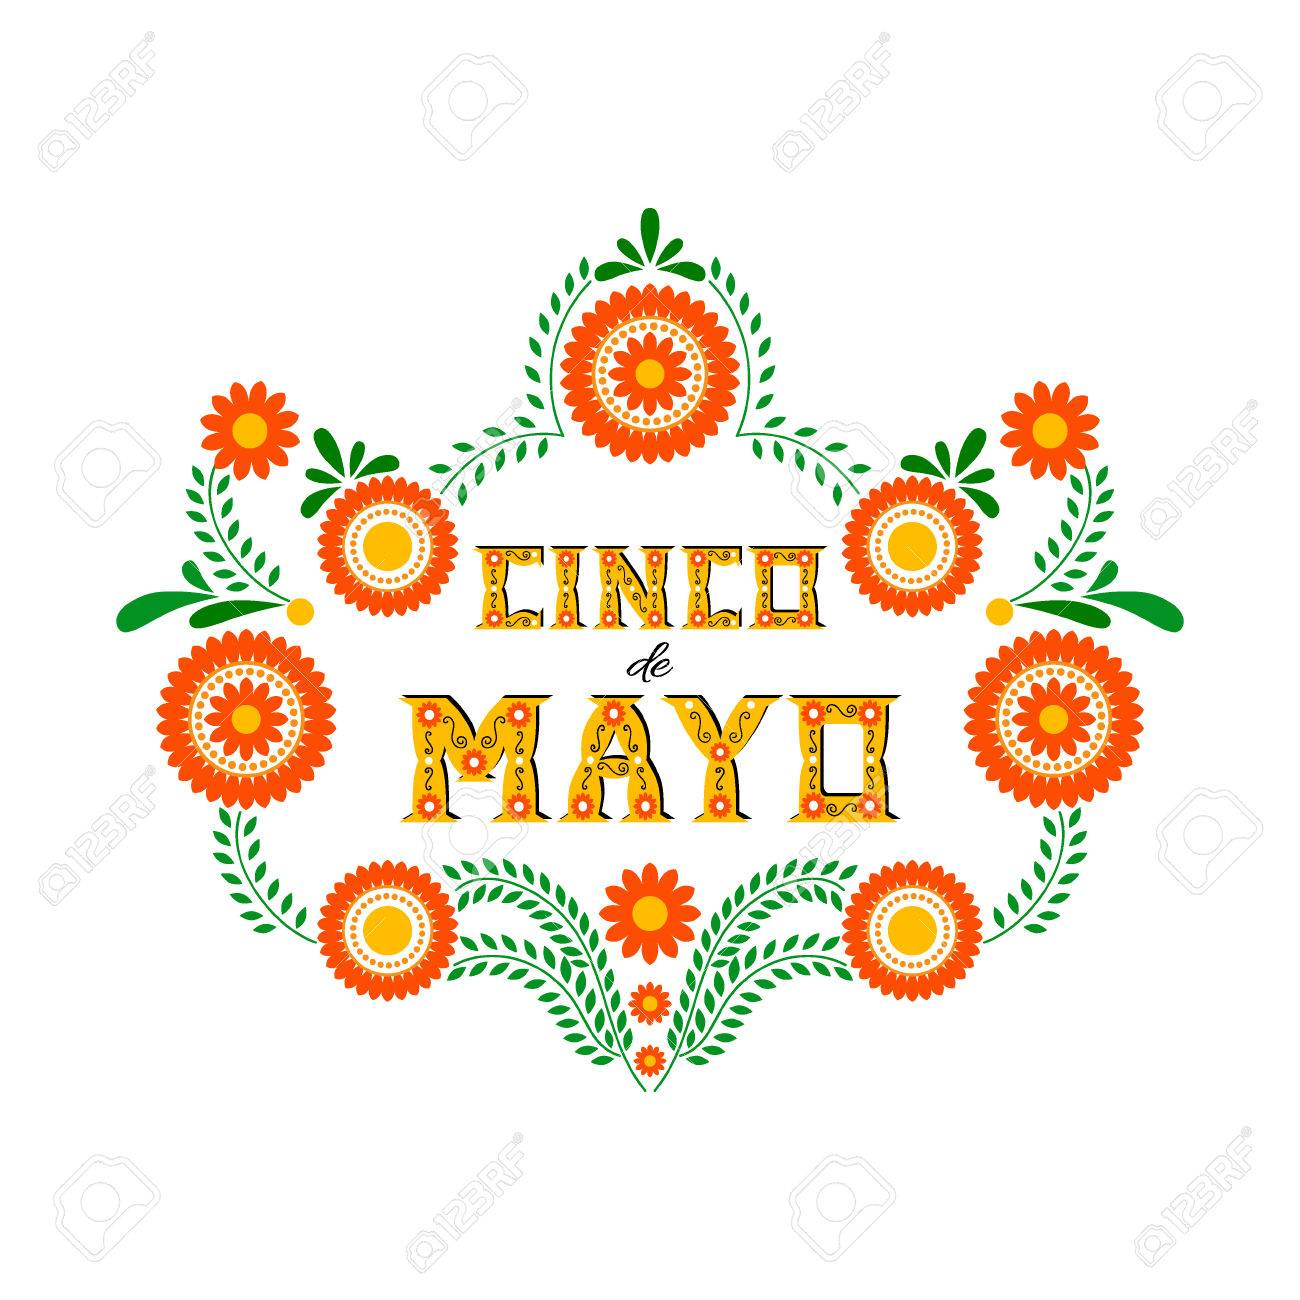 Cinco de mayo typography banner vector mexico design for fiesta cinco de mayo typography banner vector mexico design for fiesta cards or party invitation and stopboris Images